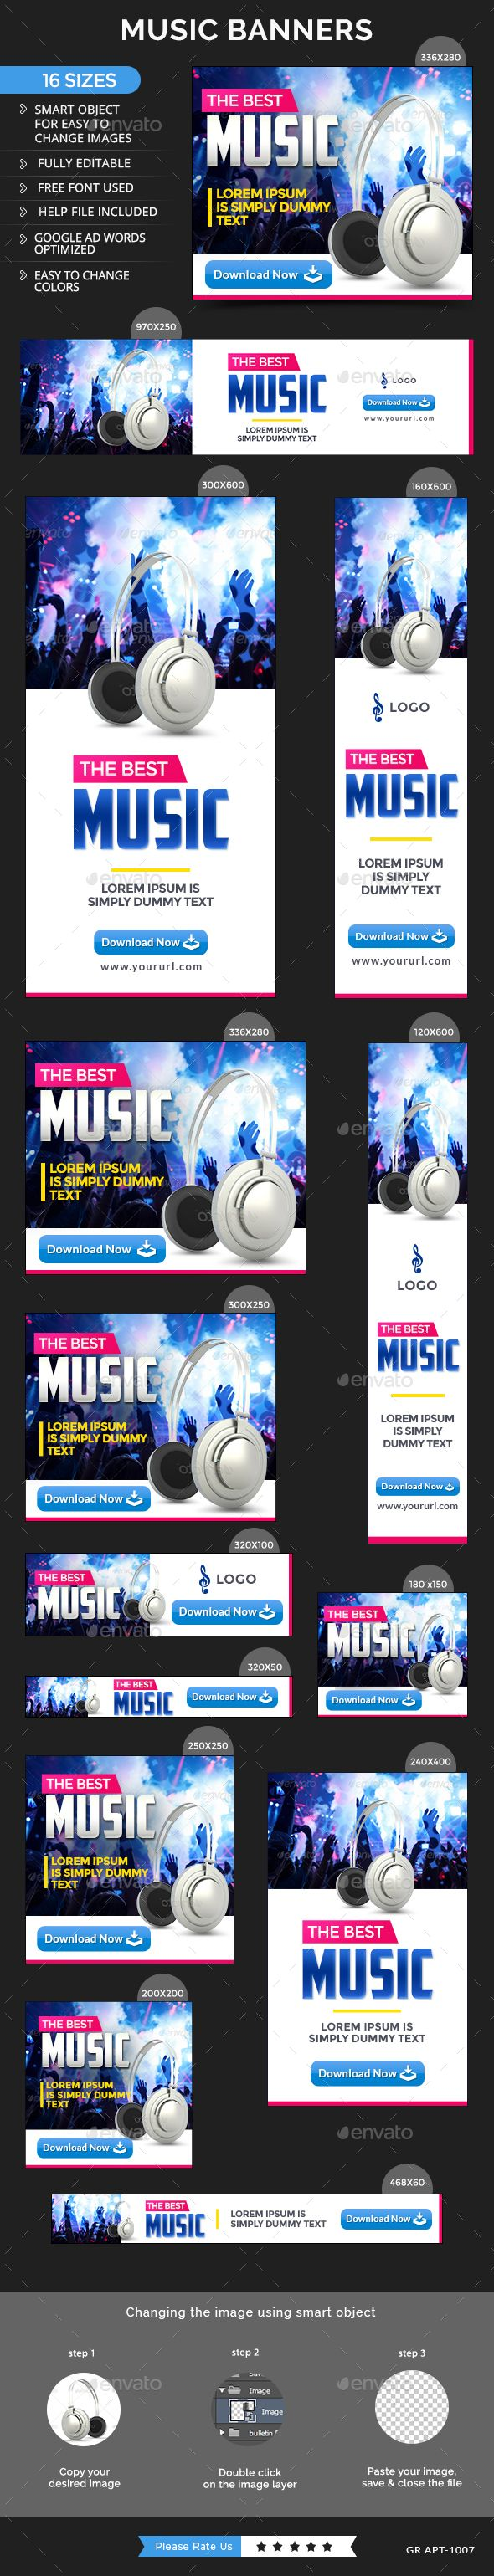 Music Web Banners Template PSD #design #ads Download: http://graphicriver.net/item/music-banners/13876939?ref=ksioks